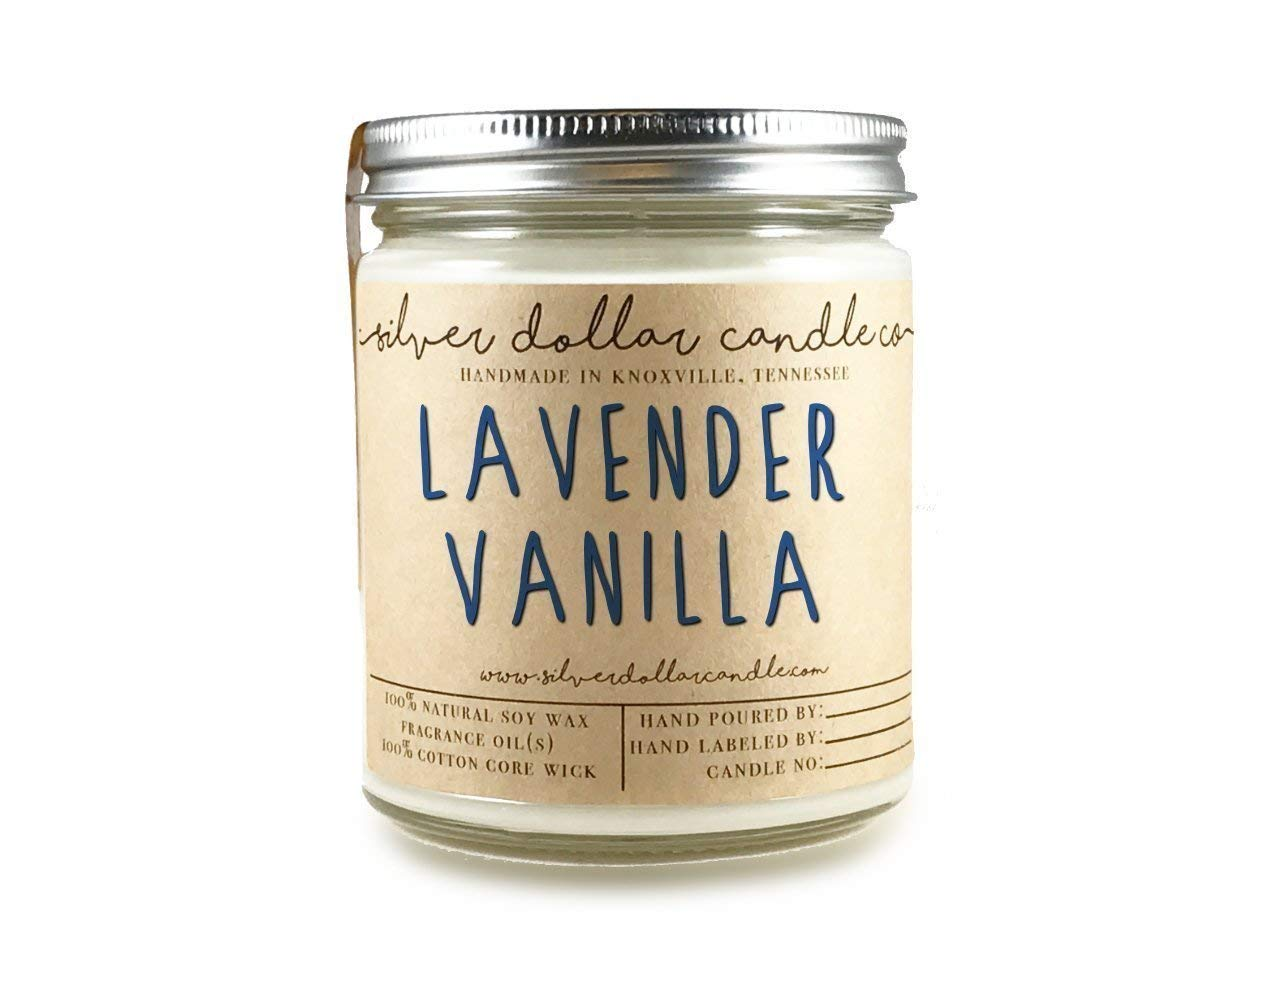 Lavender and Vanilla Handmade 8oz Scented Candle 100% Soy Wax Zinc/Lead Free Natural